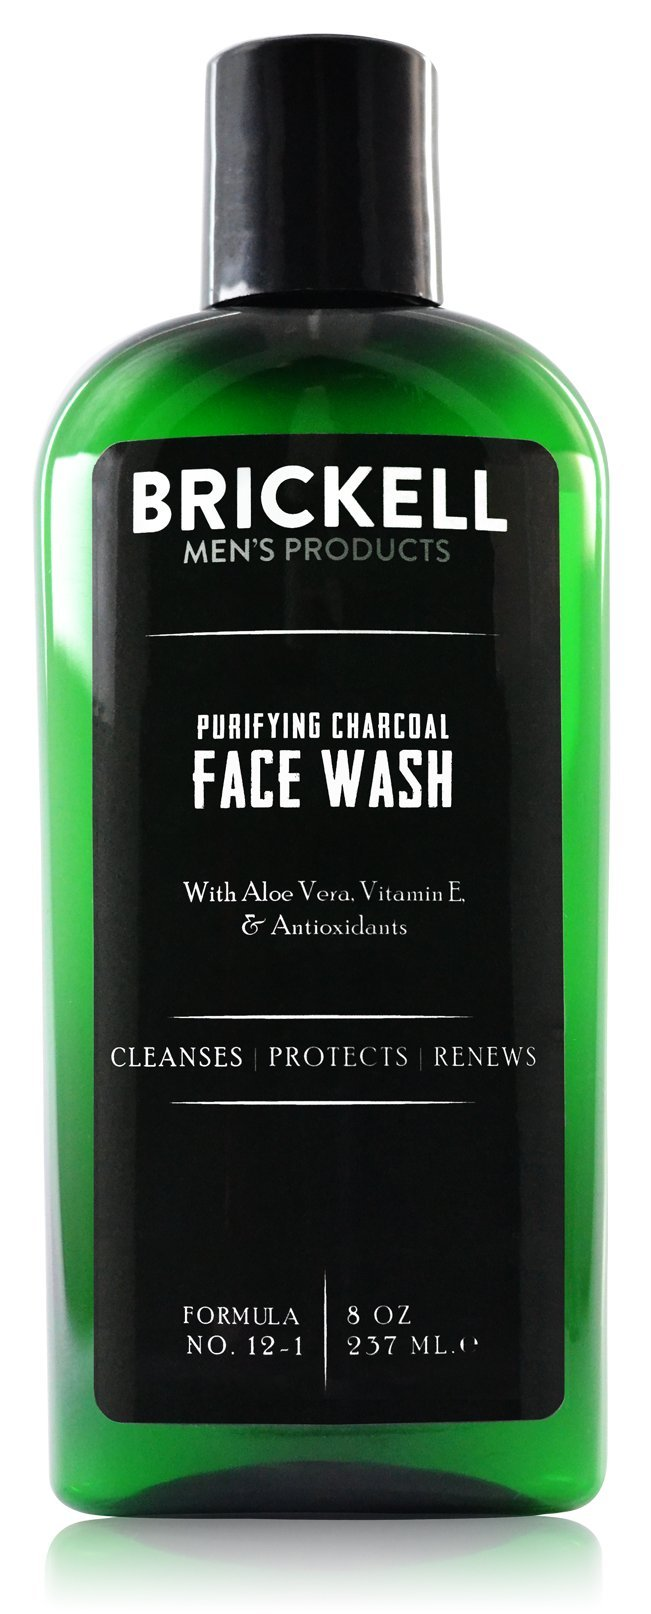 Brickell Men's Purifying Charcoal Face Wash for Men, Natural and Organic Daily Facial Cleanser, 8 Ounce, Scented by Brickell Men's Products